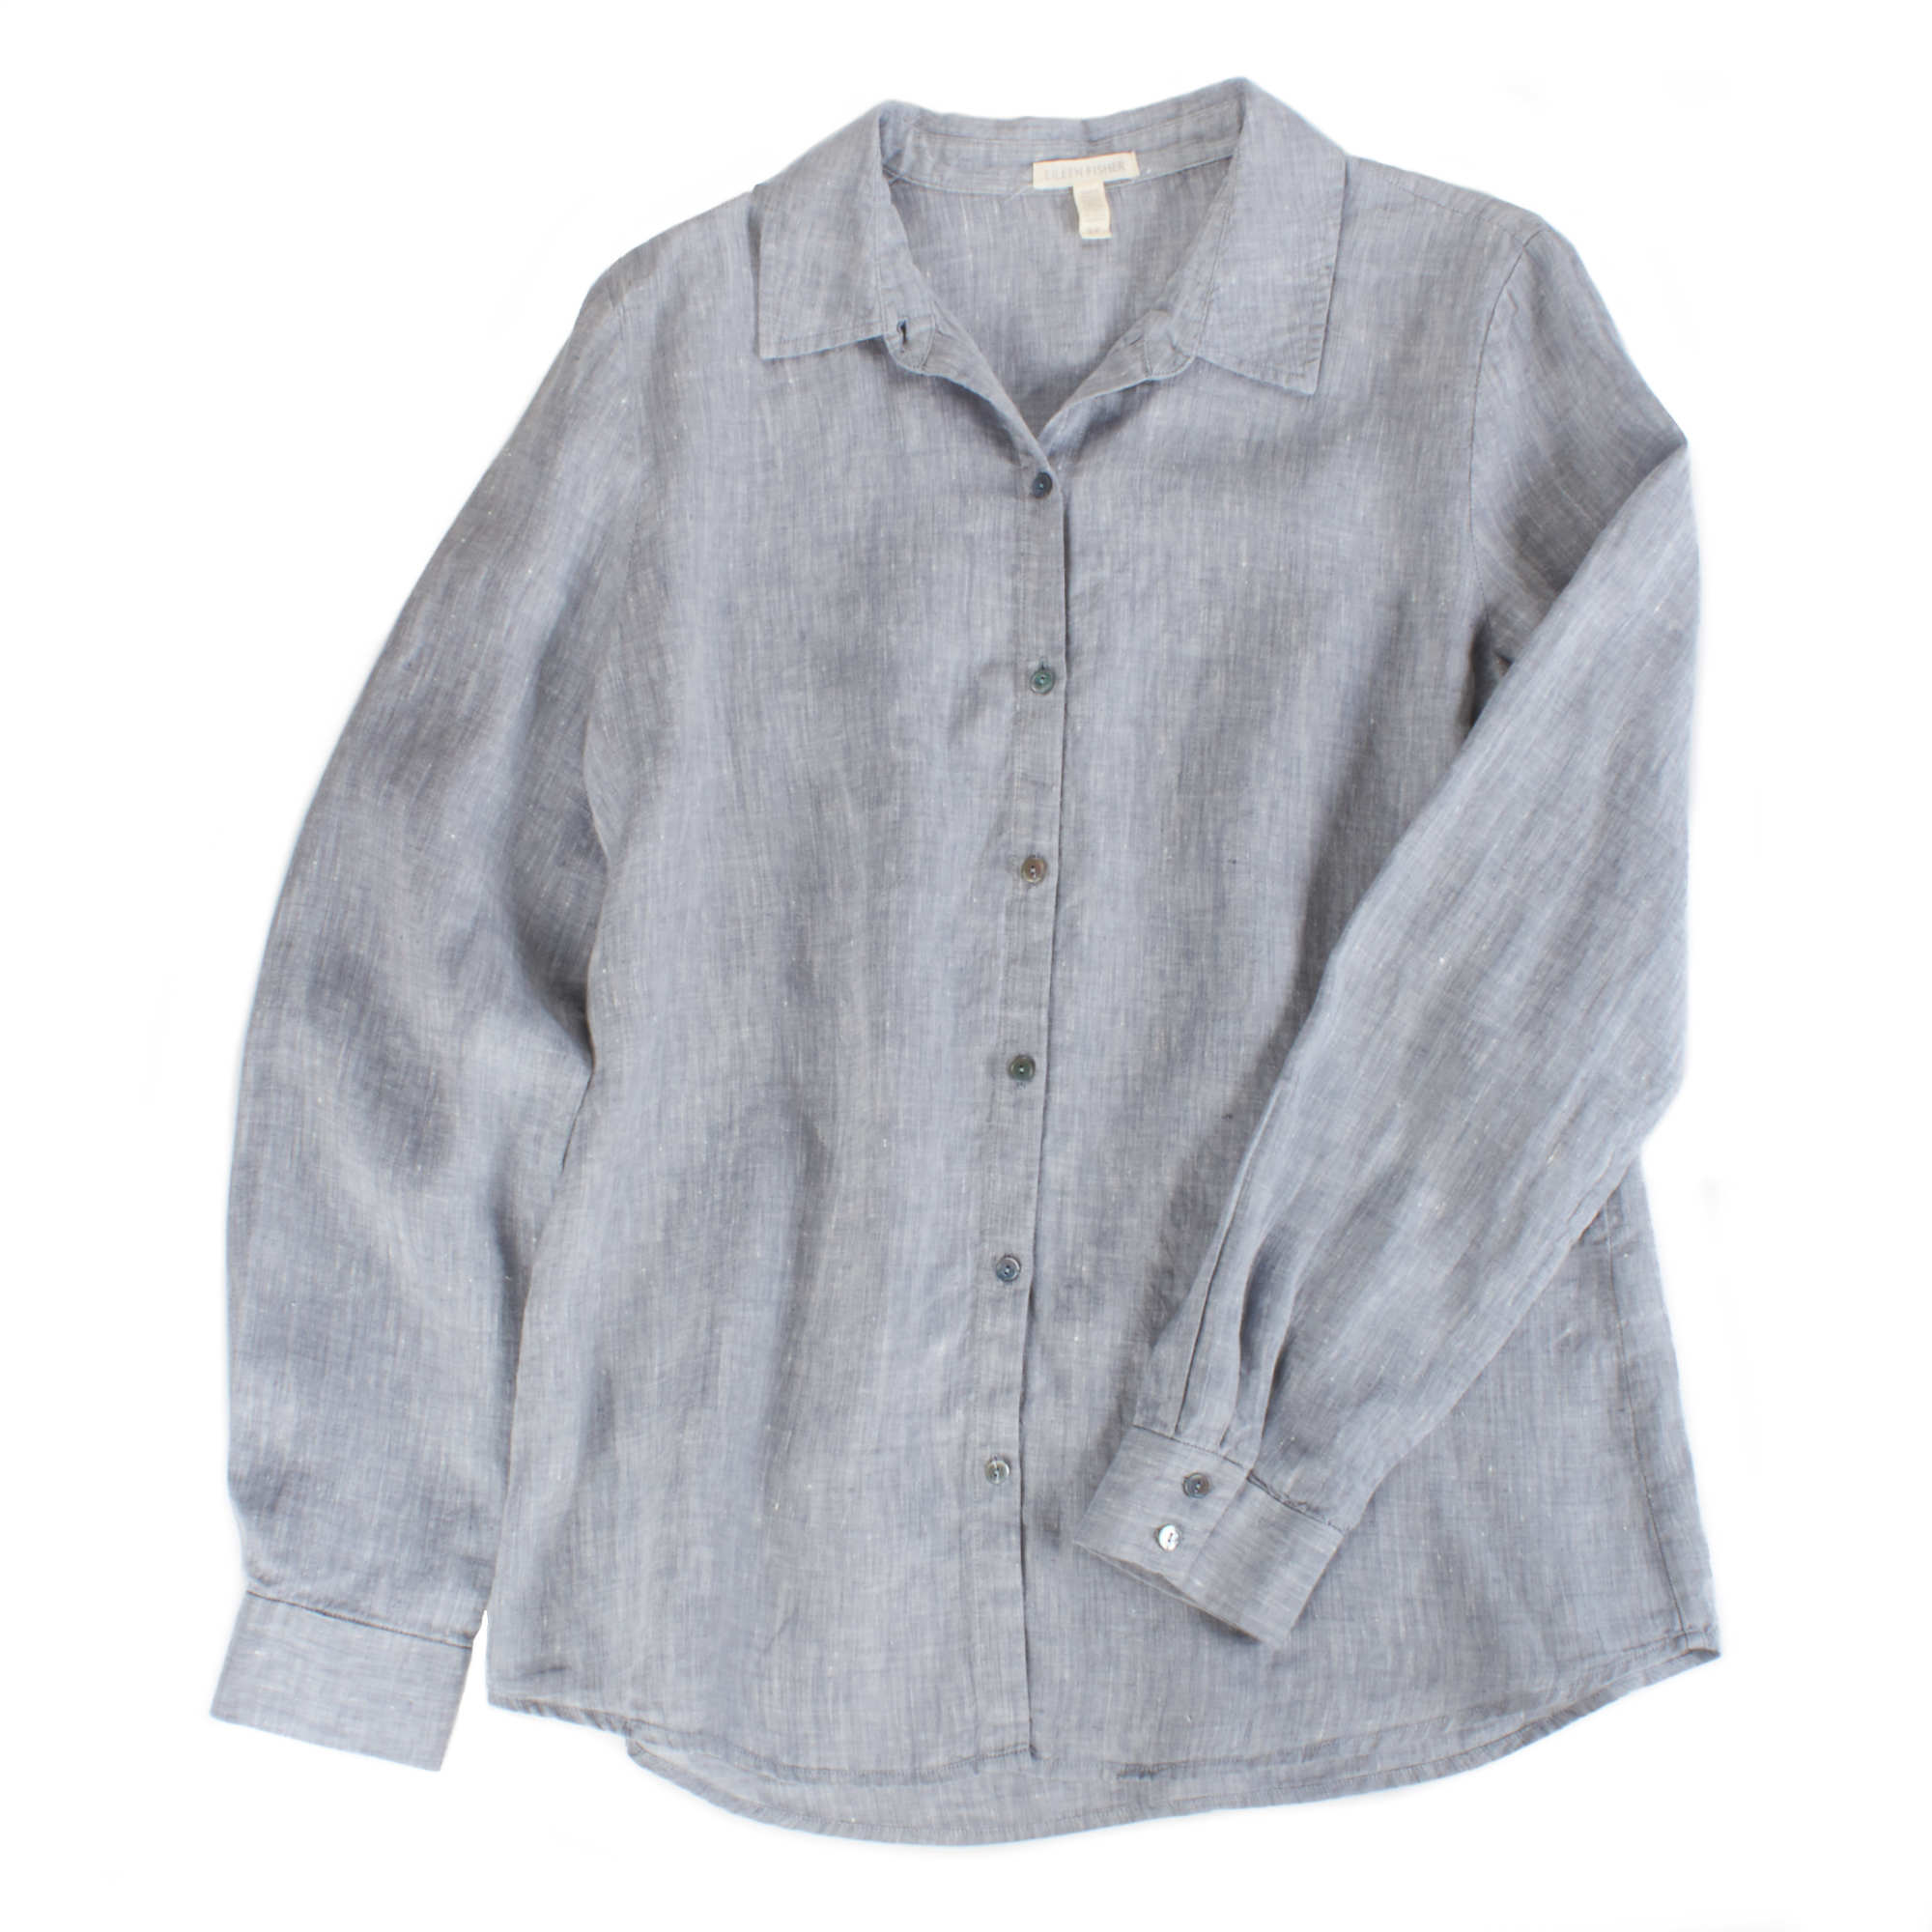 Yarn-dyed Handkerchief Linen Blouse